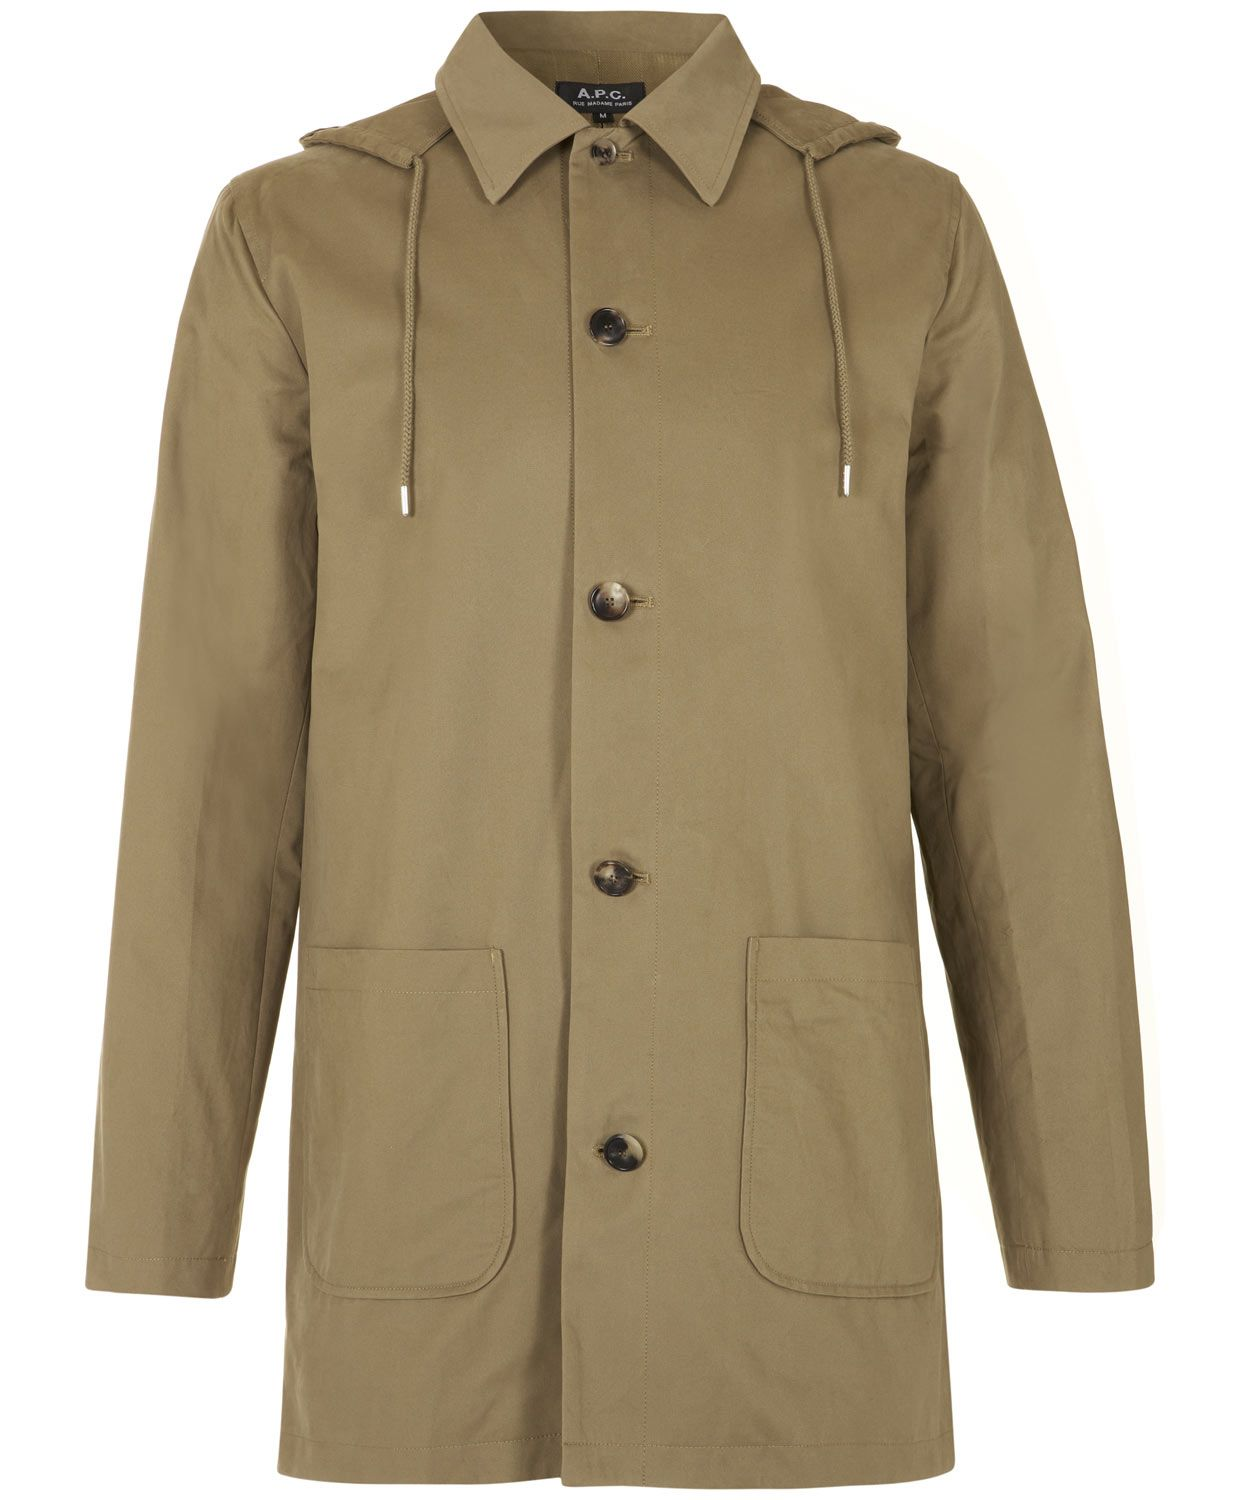 Khaki Mac Parka, A.P.C. Shop the latest men's coats and jackets ...